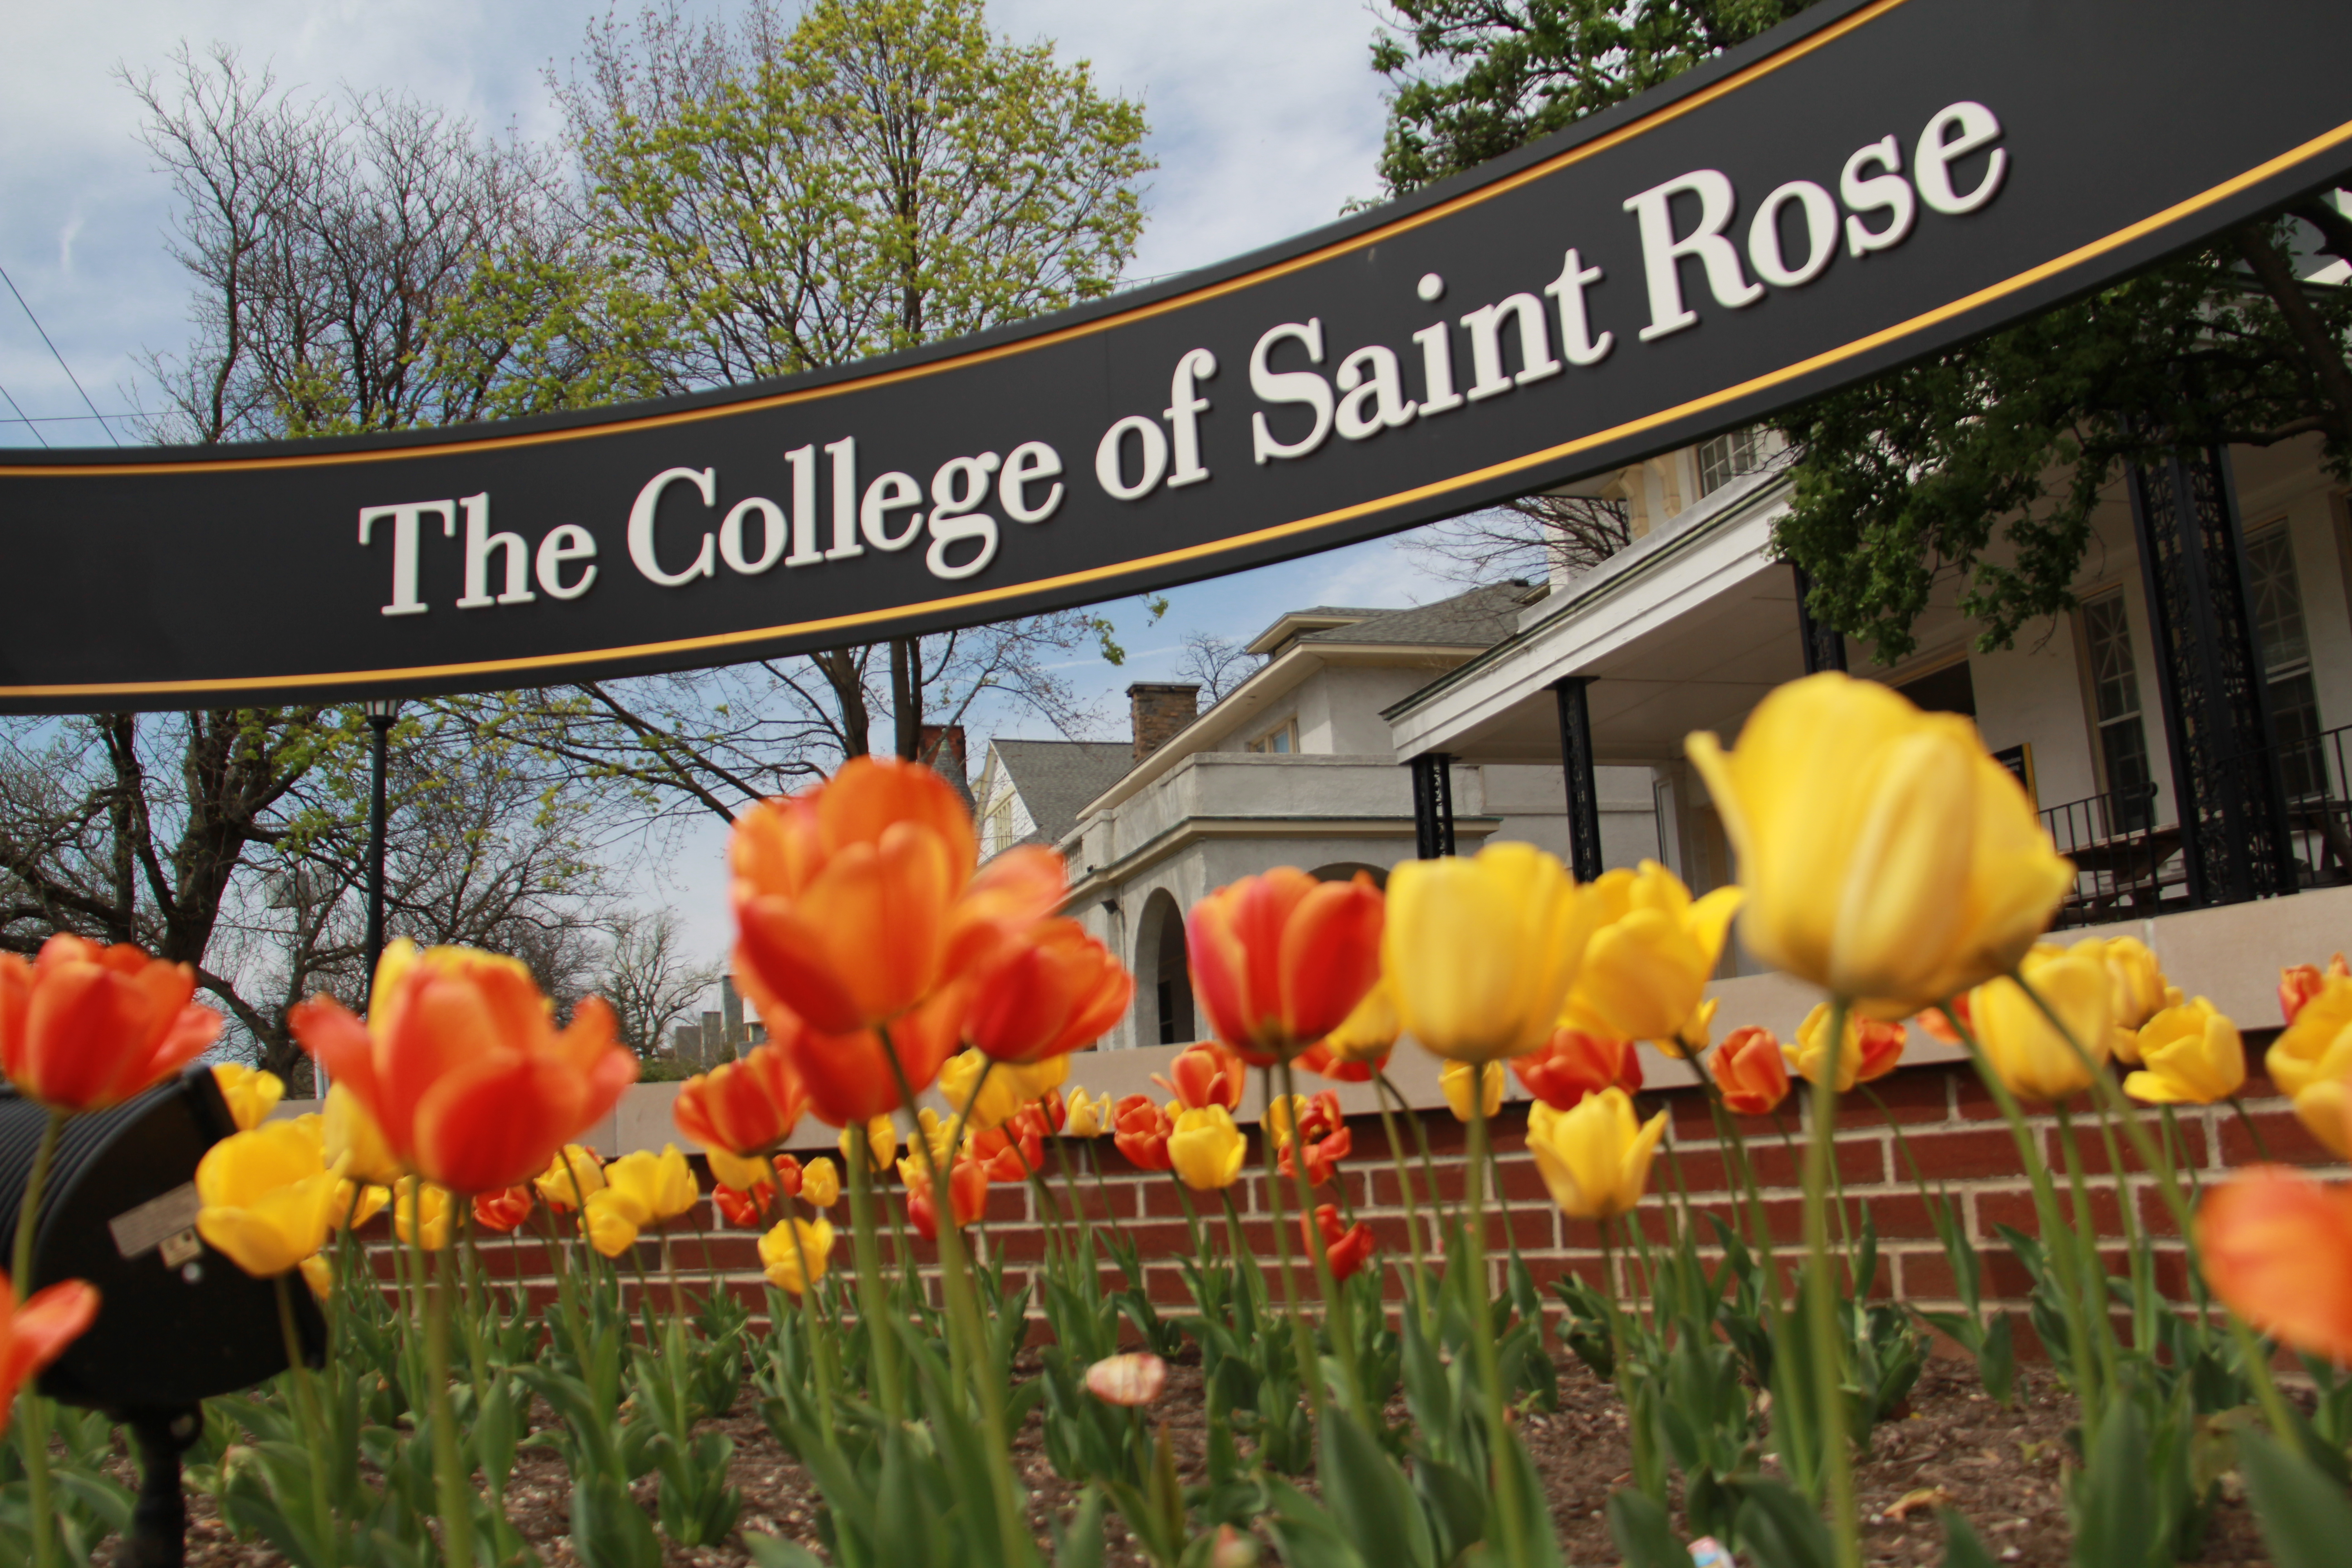 Saint Rose Sign with Tulips